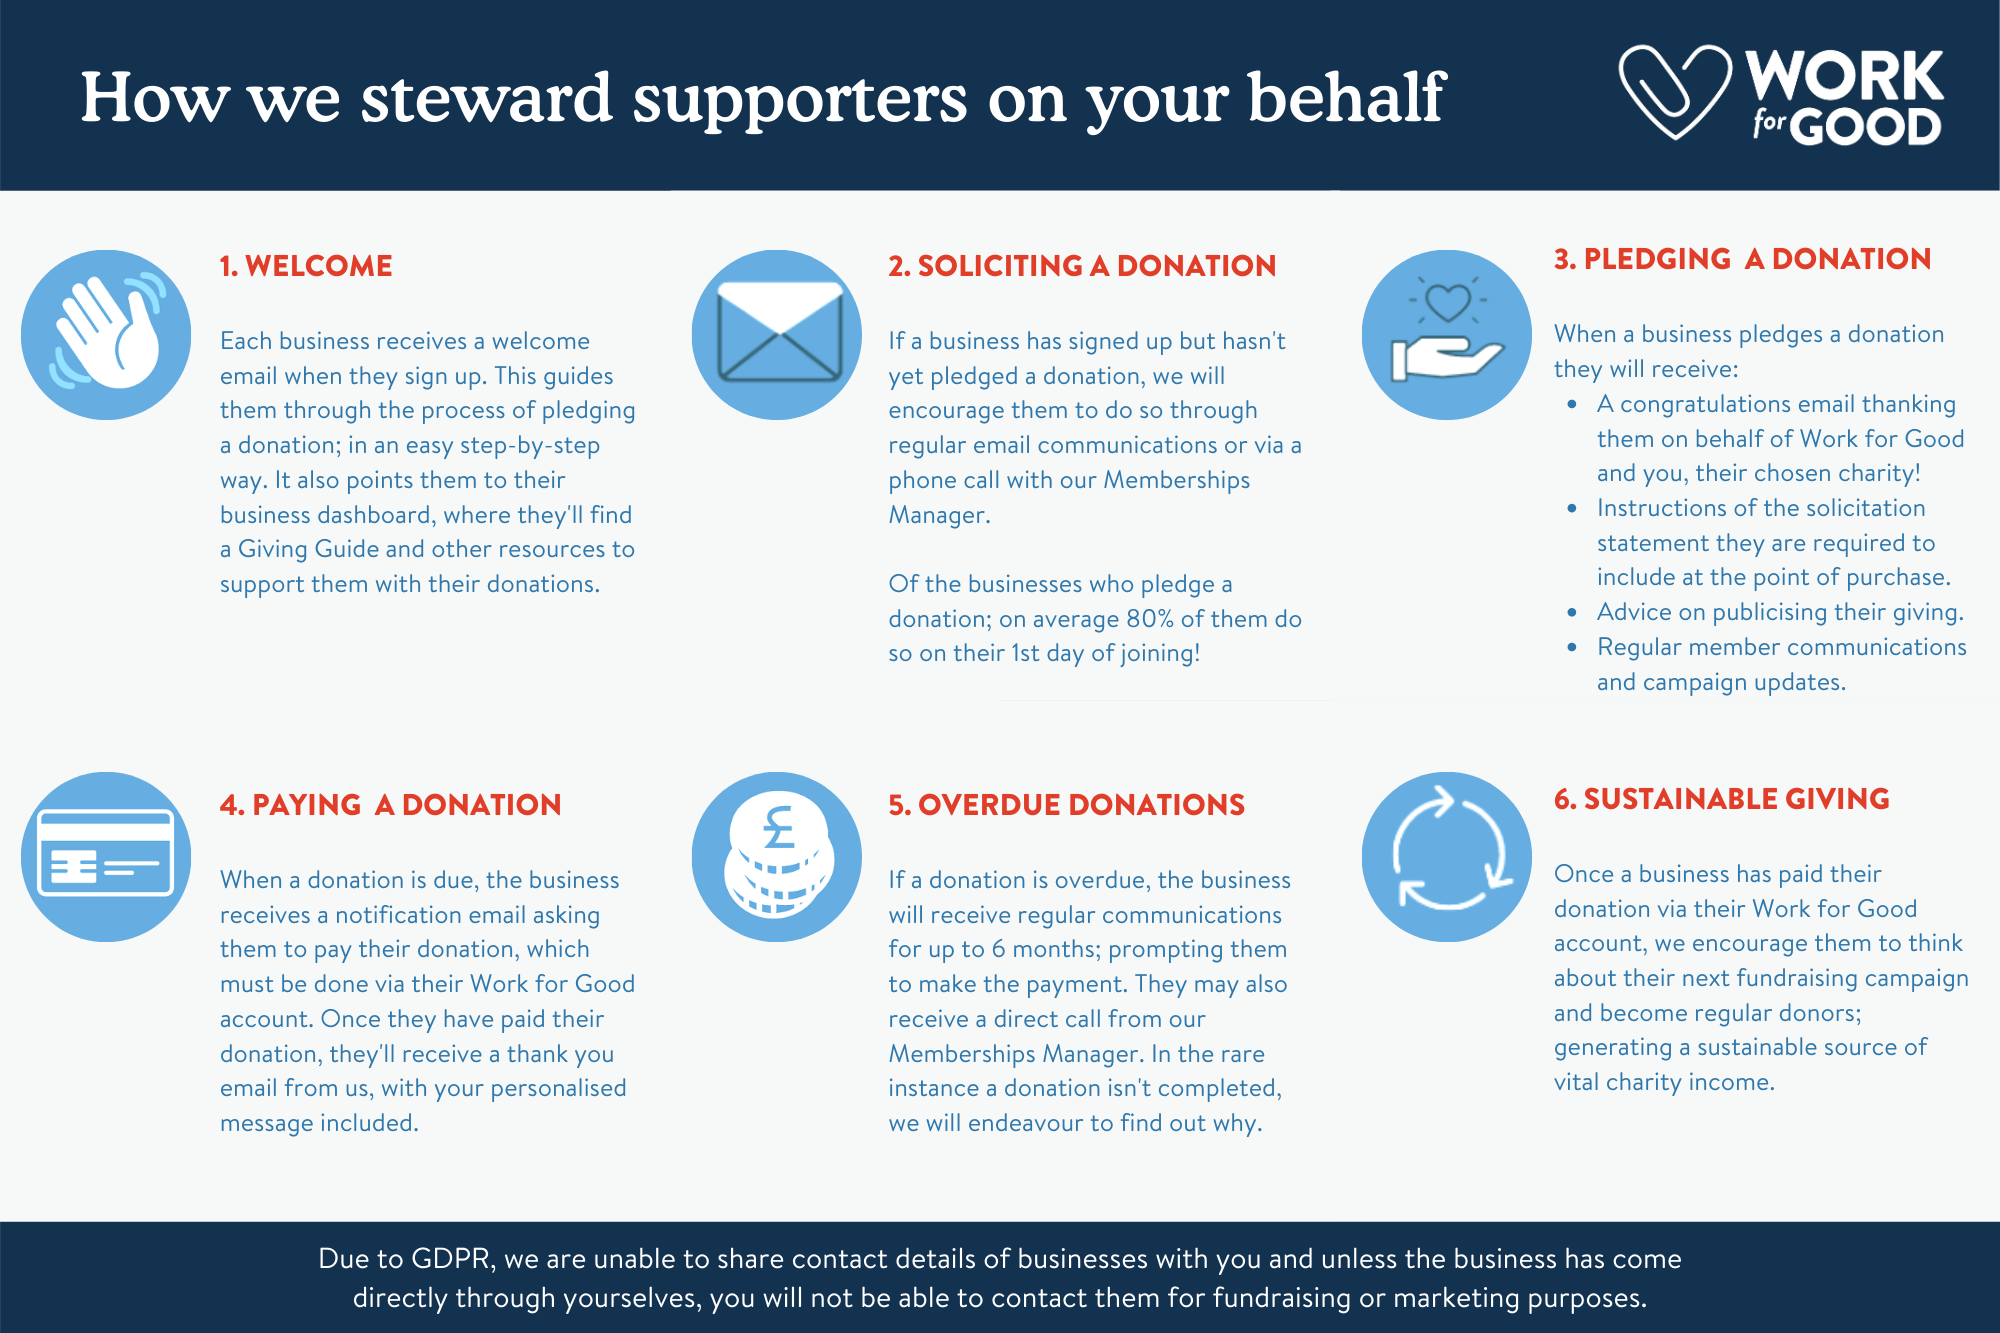 How we help steward your supporters